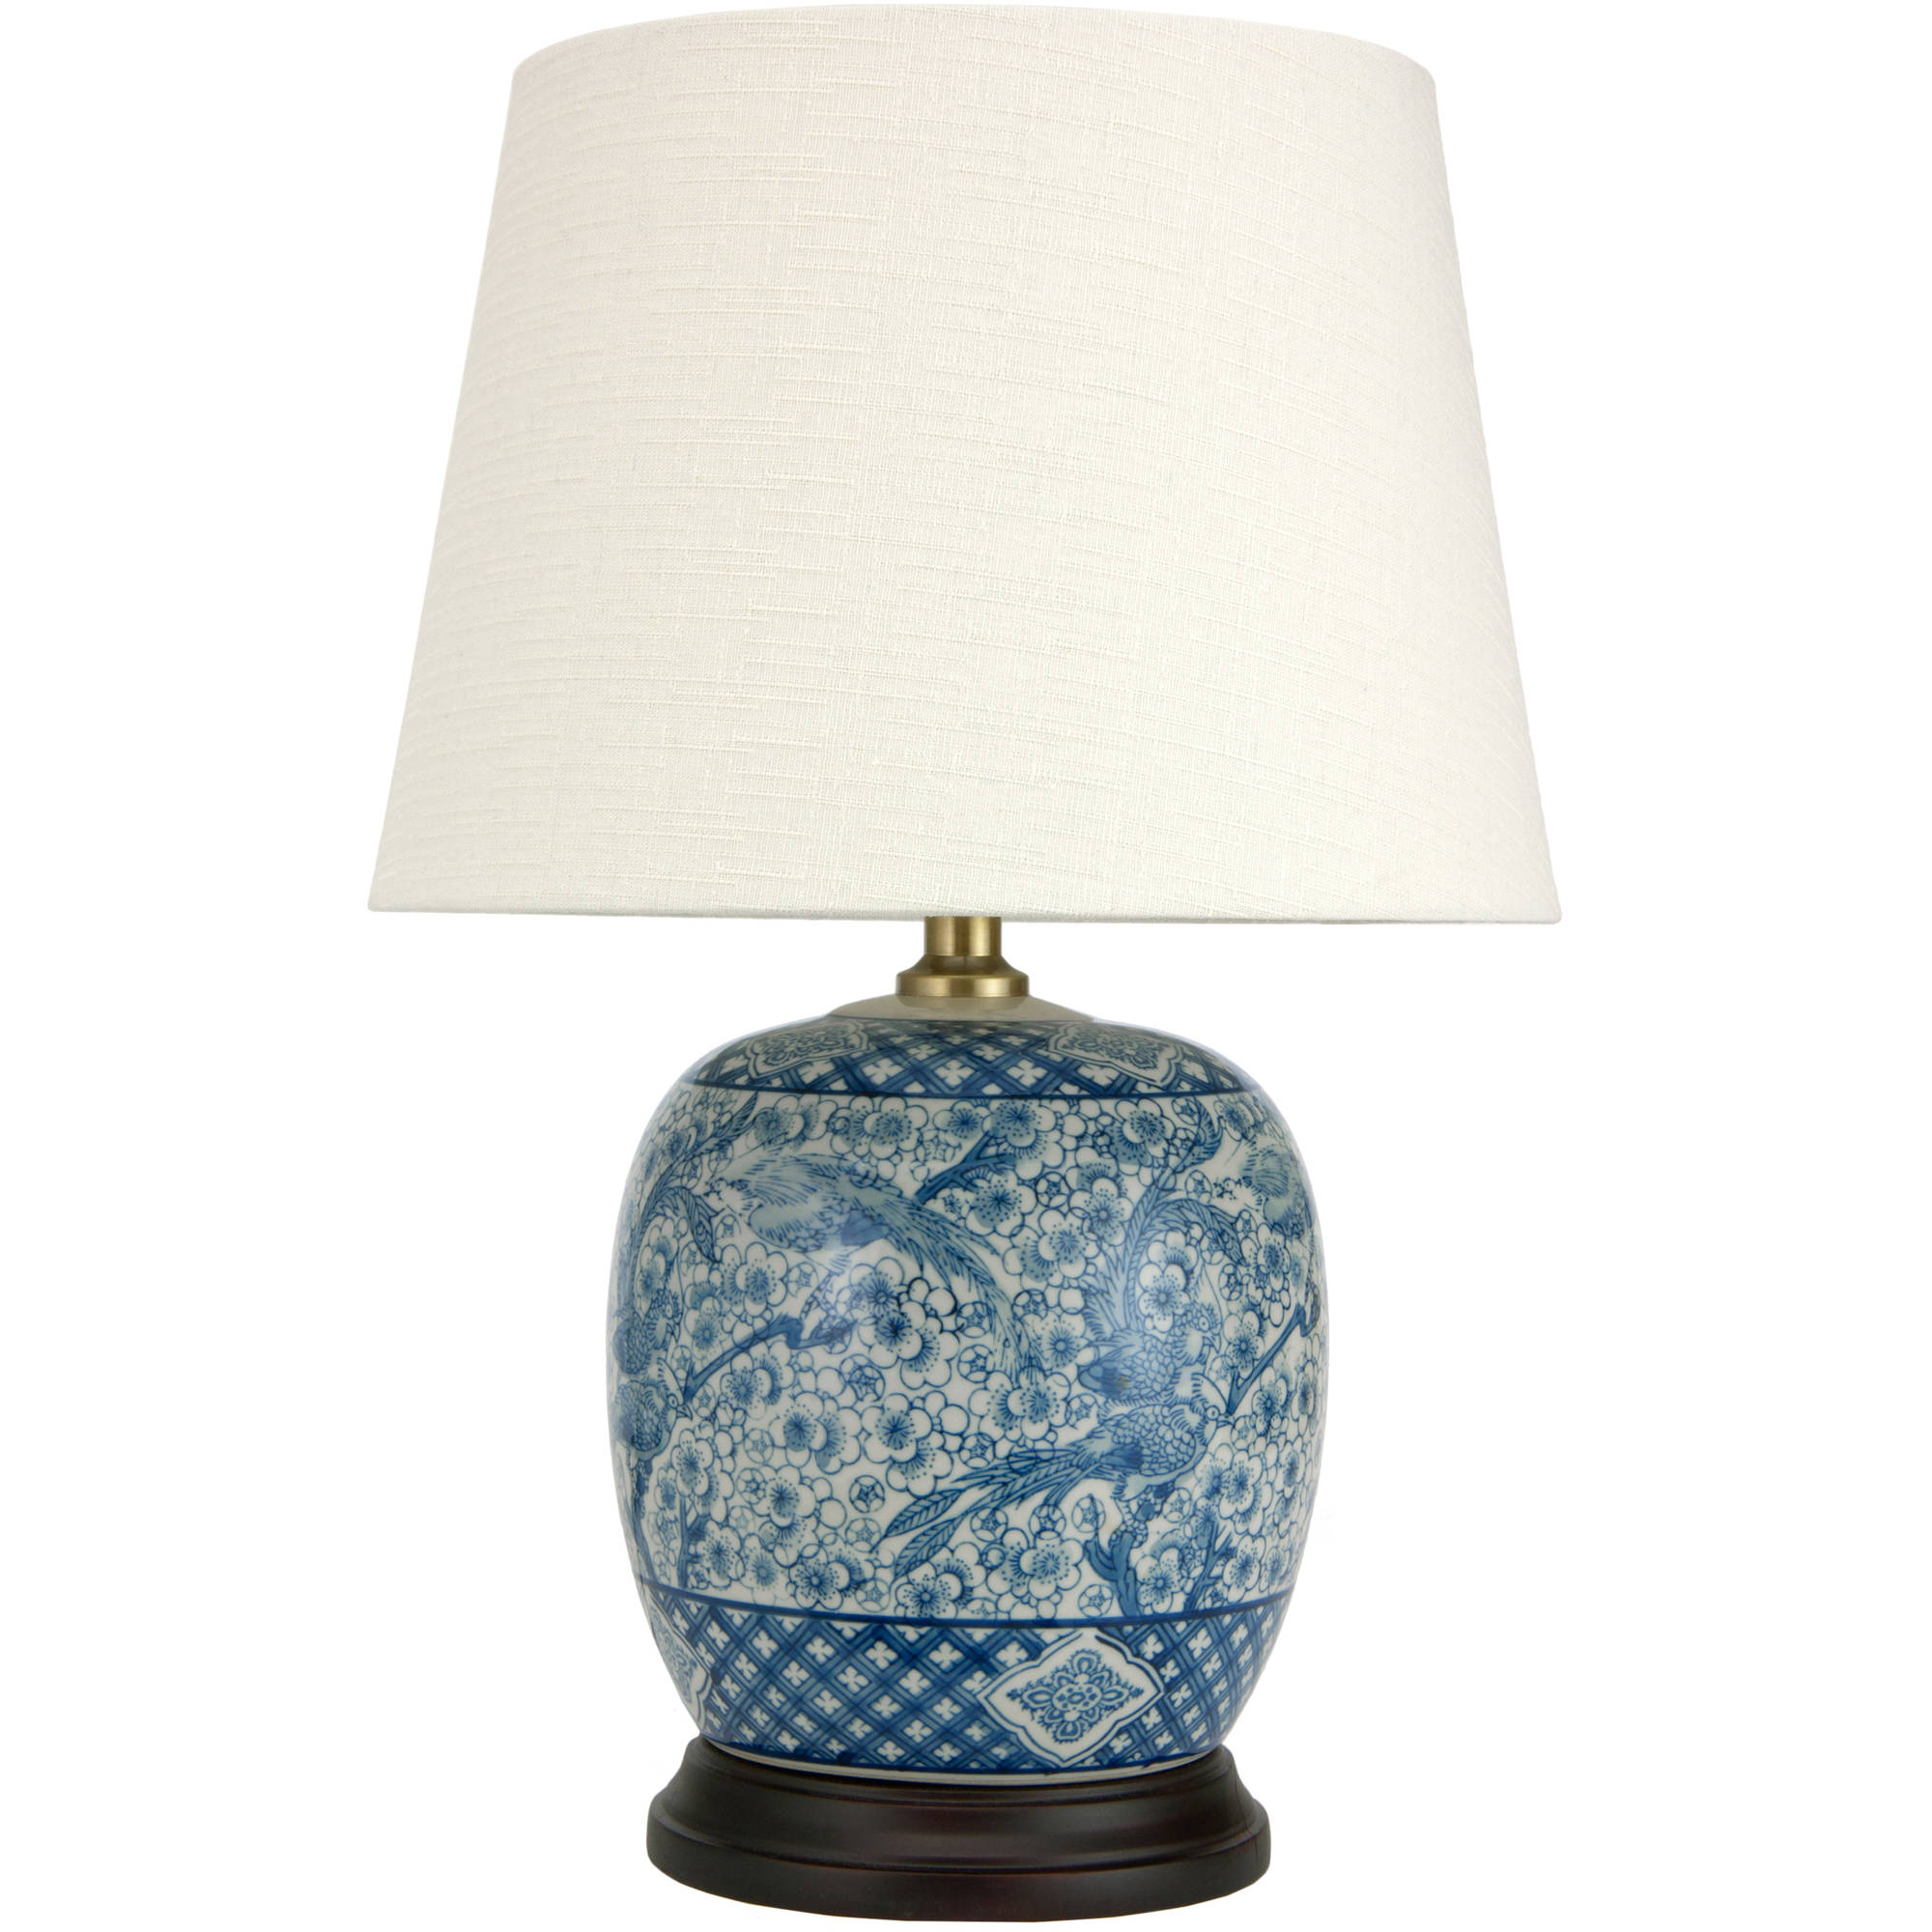 "20"" Classic Blue & White Porcelain Jar Lamp by Oriental Furniture"